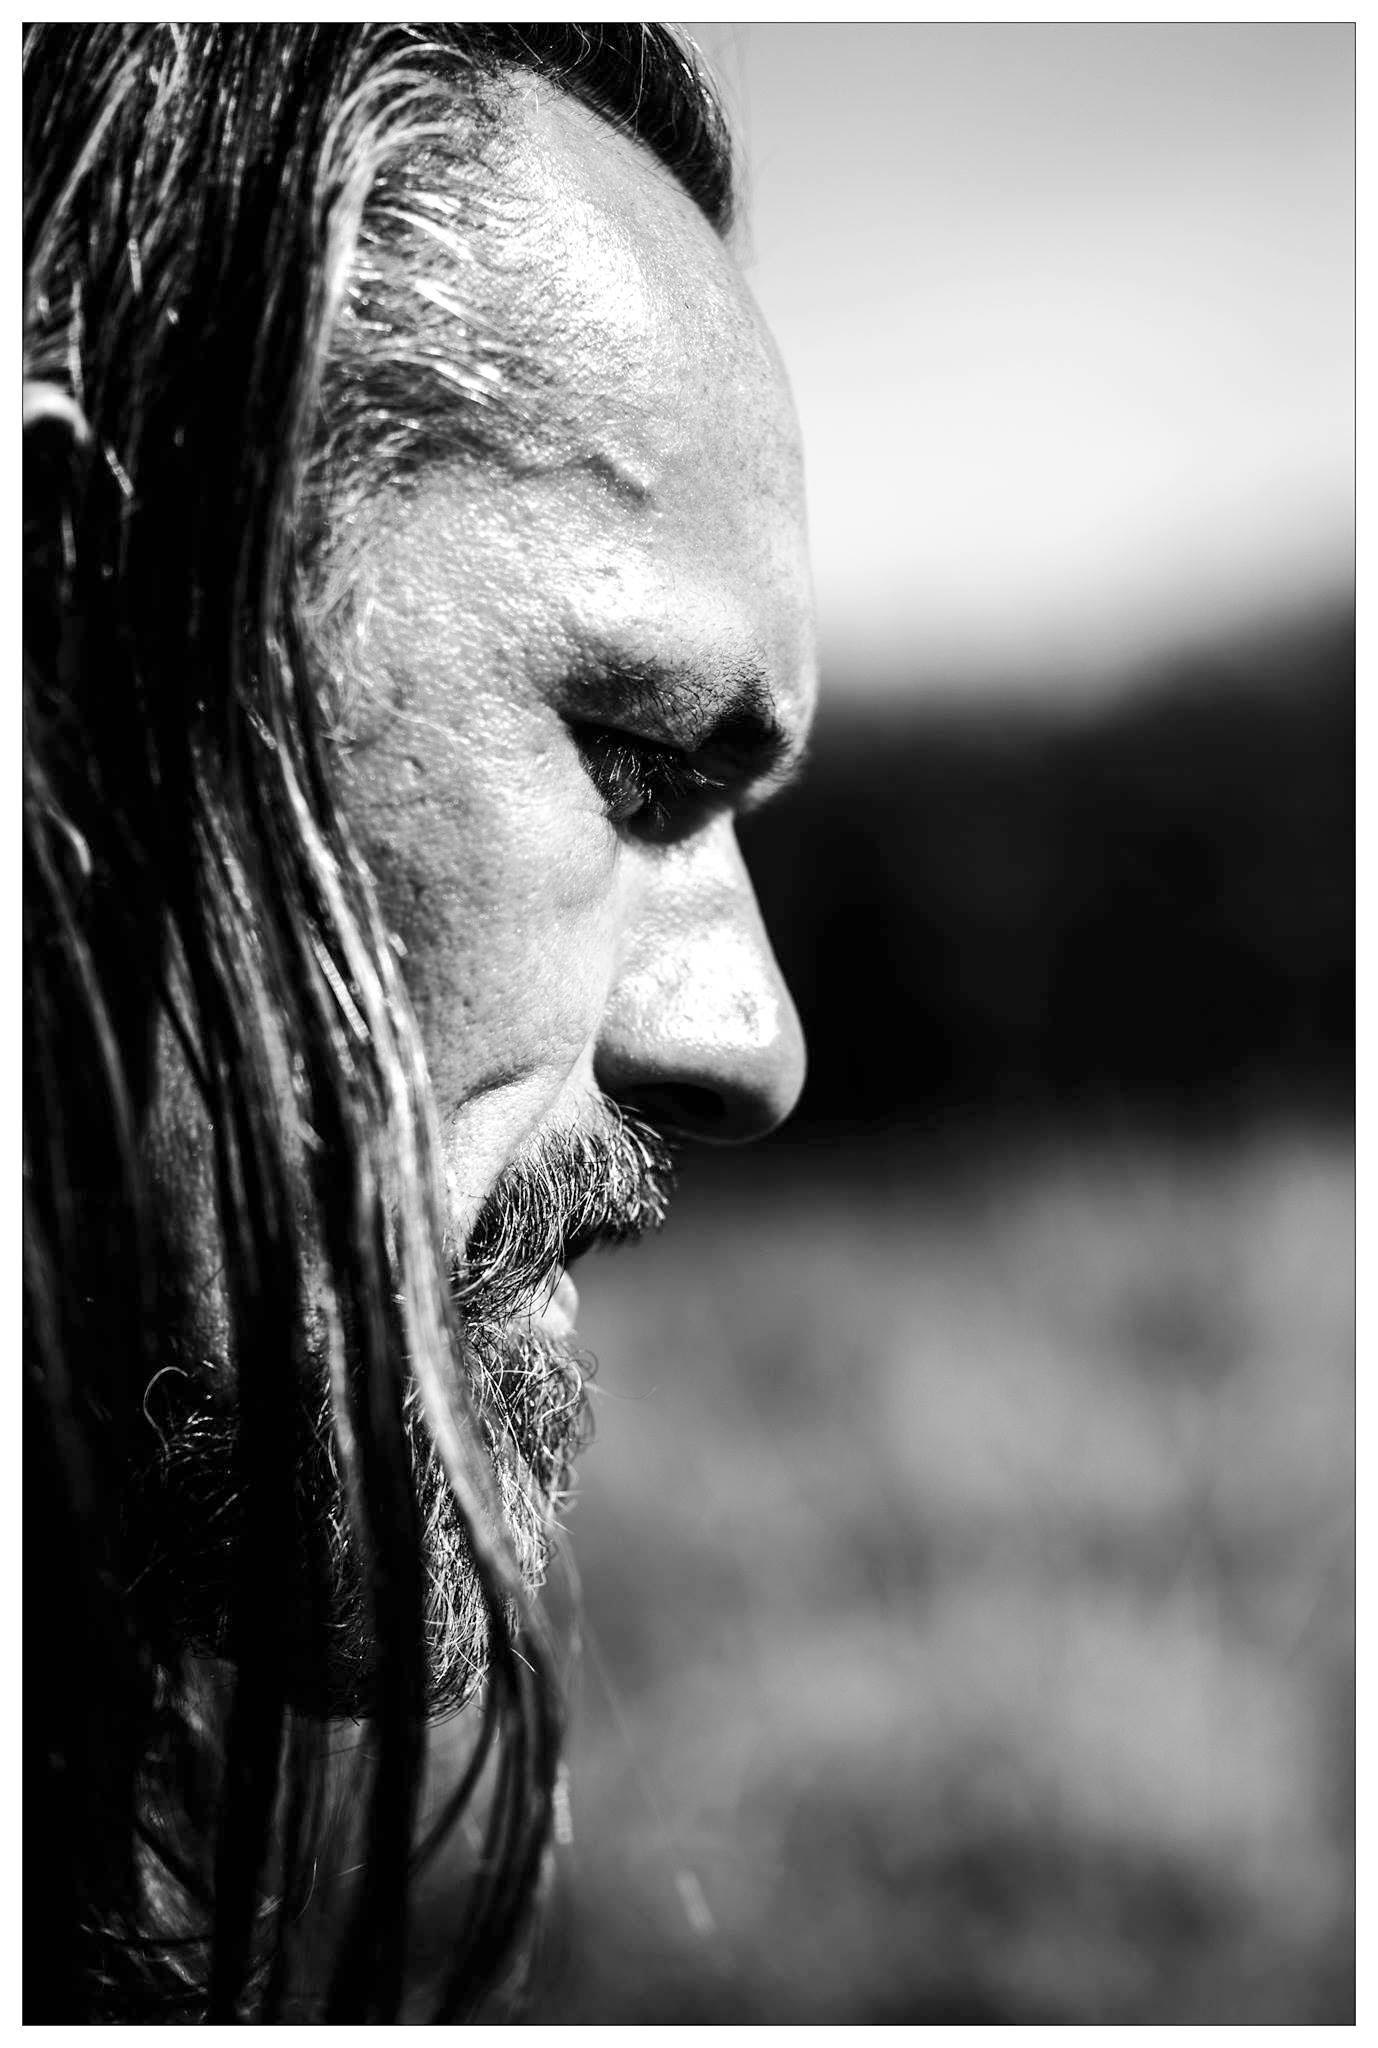 Peter Verwimp is a shamanic practitioner from Antwerp Belgium